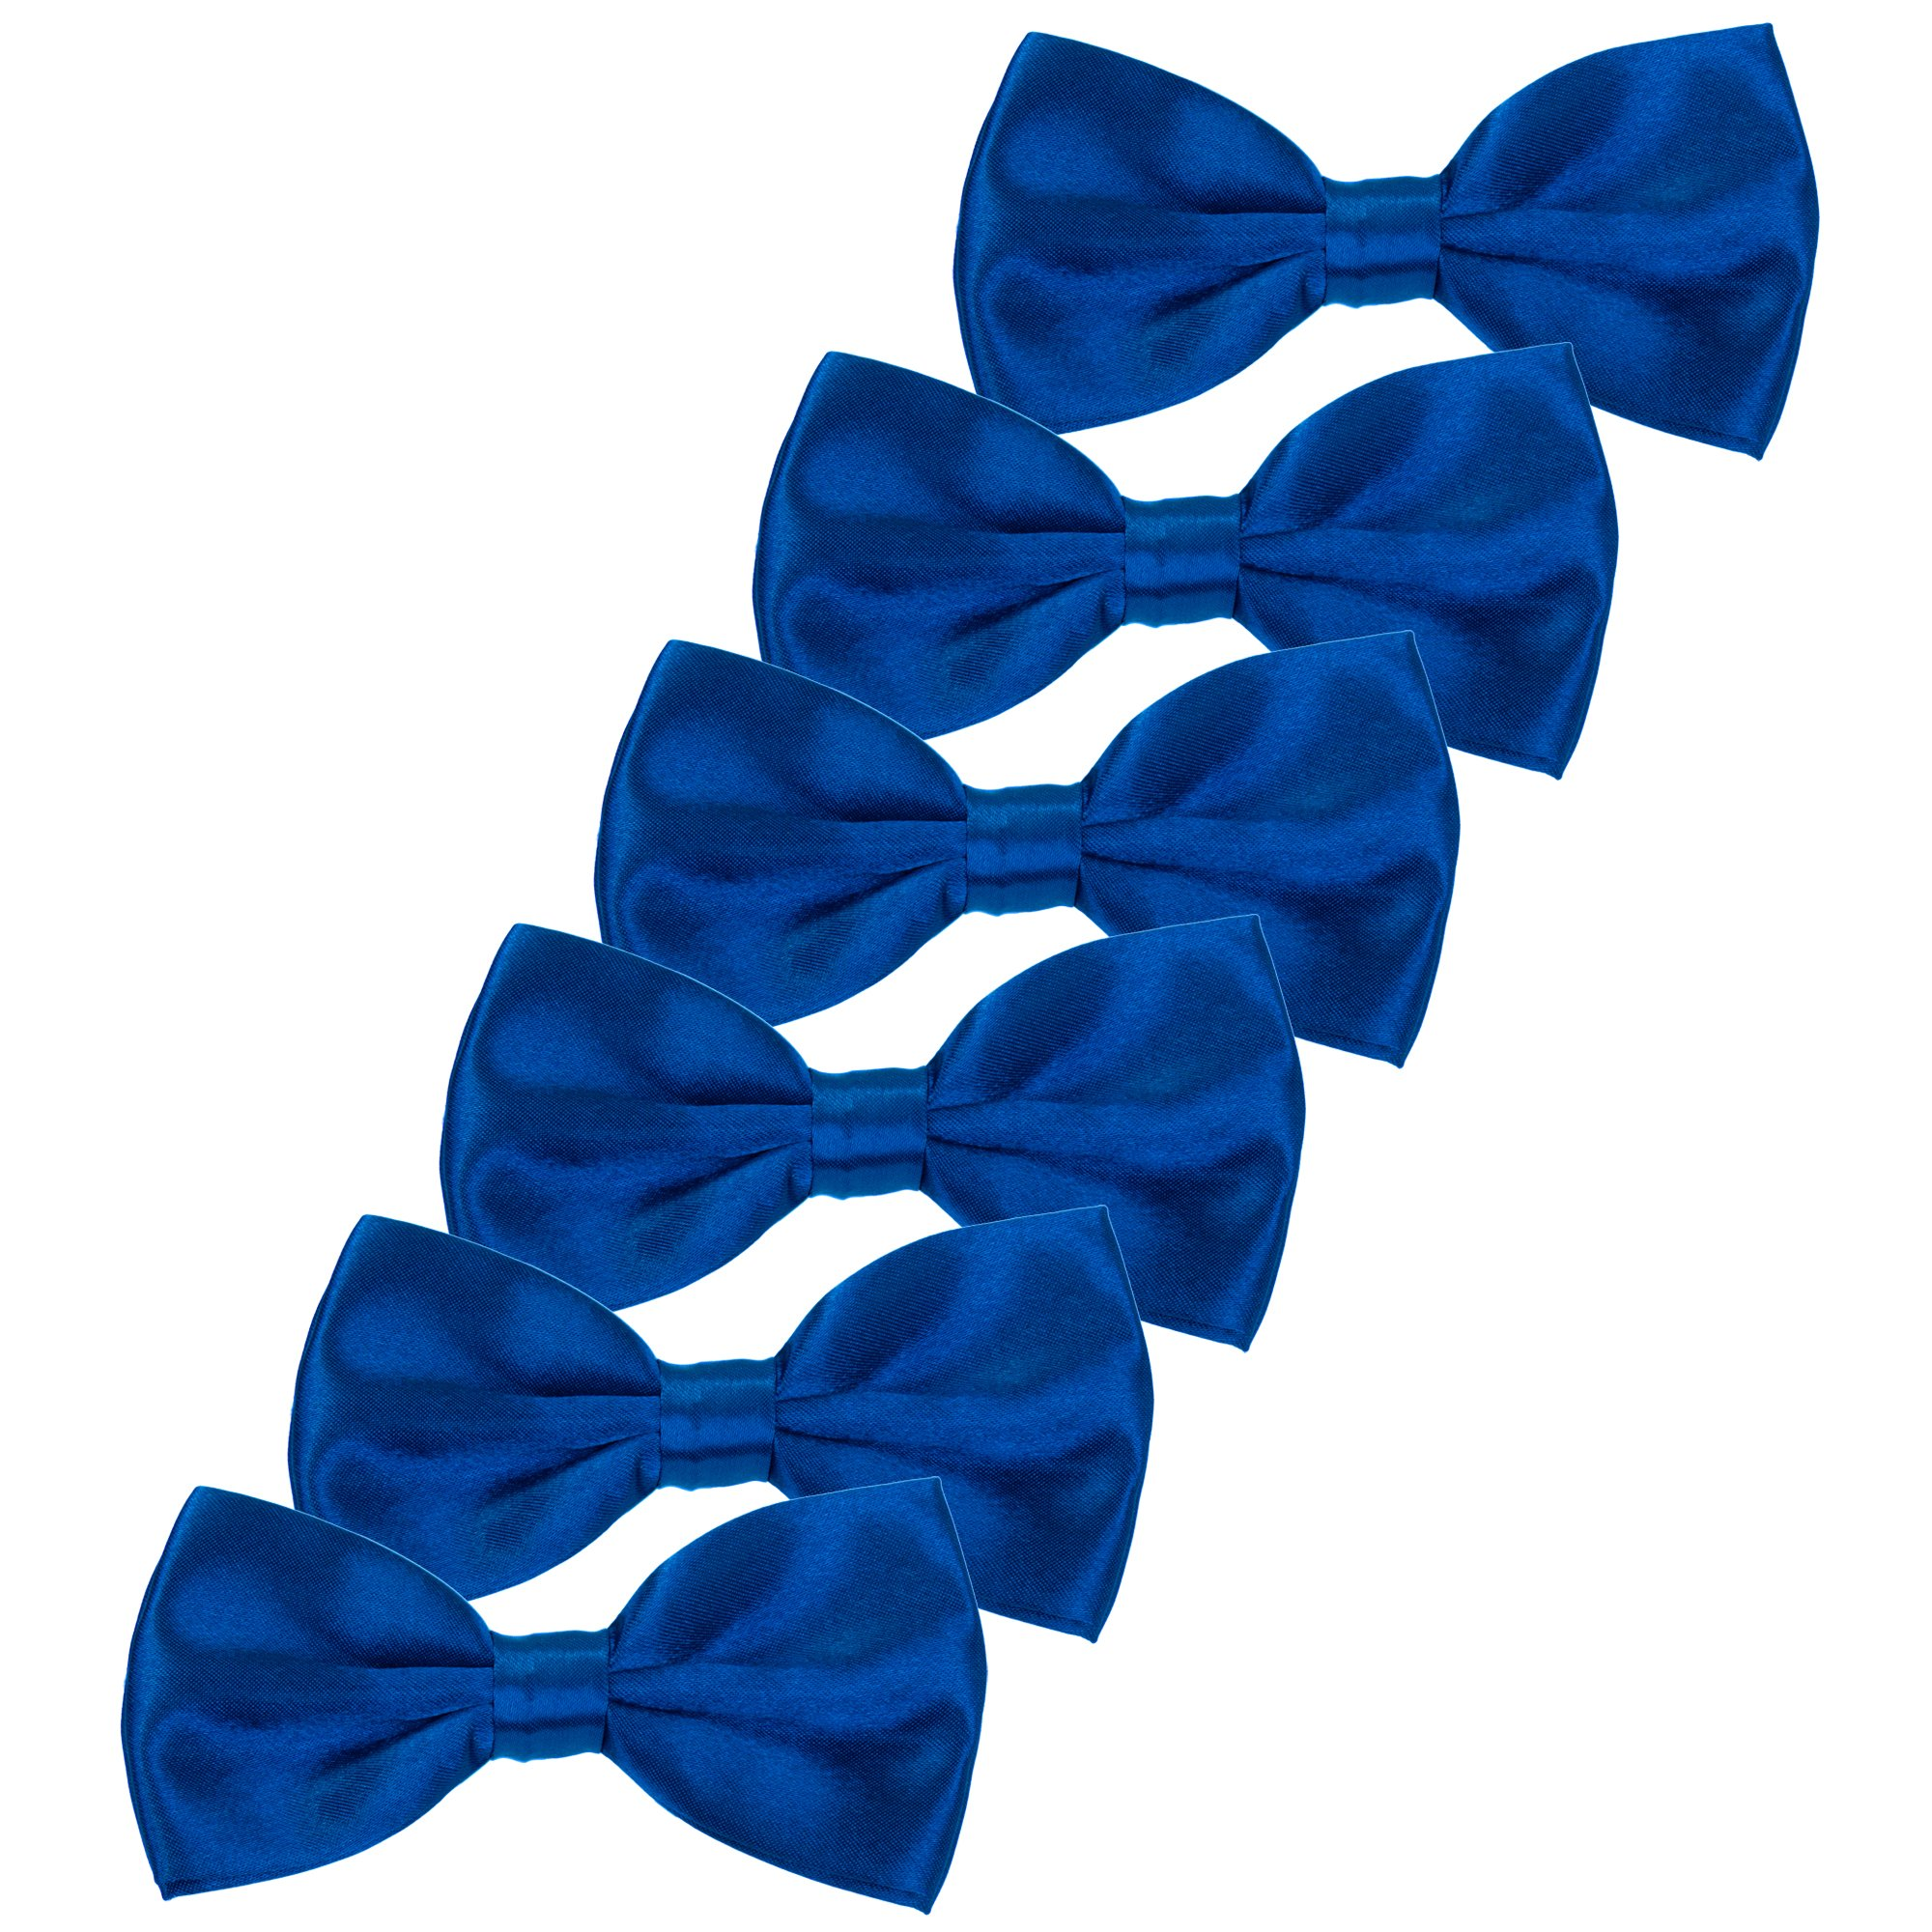 Boys Children Formal Bow Ties - 6 Pack of Solid Color Adjustable Pre Tied Bowties for Wedding Party (Royal Blue) by Kajeer (Image #1)